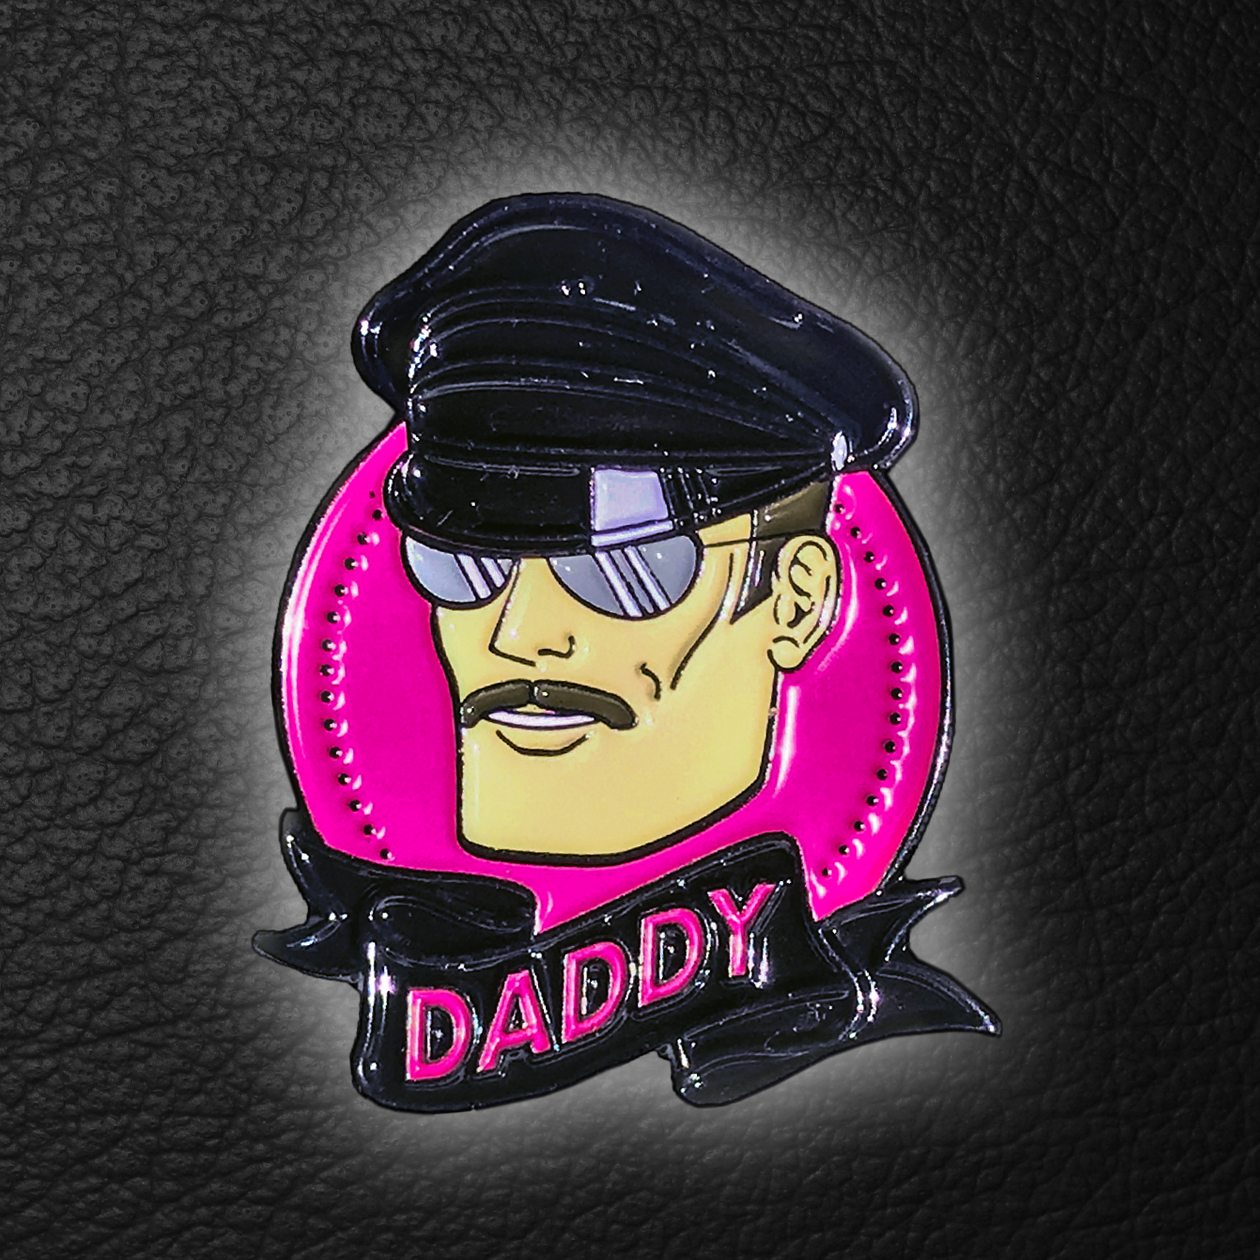 And check out our DADDY pin too! -